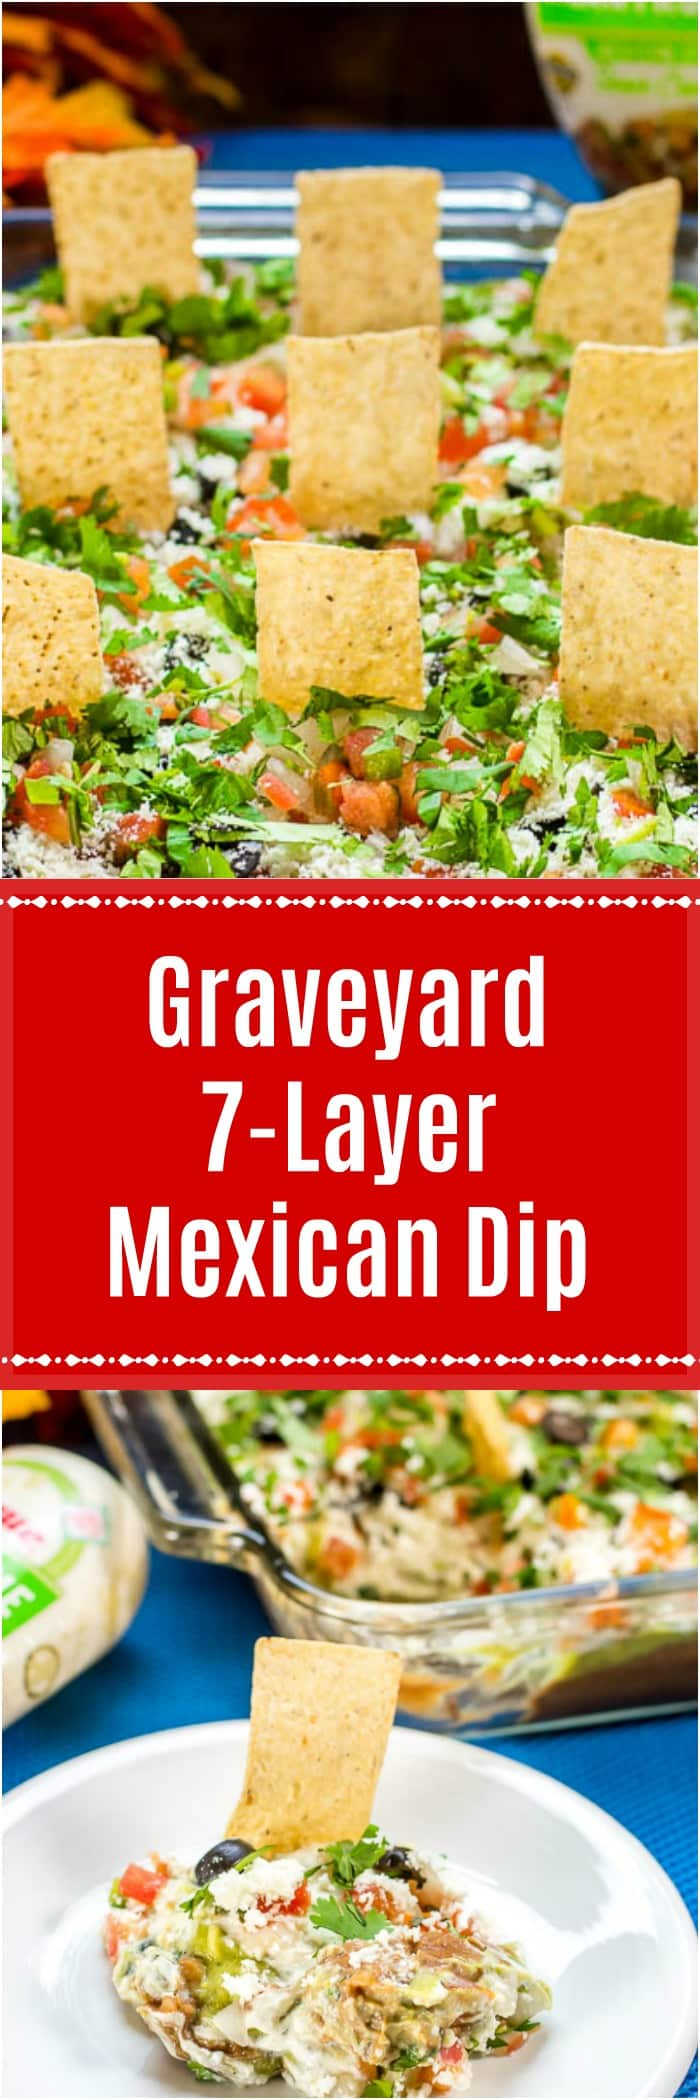 Graveyard 7-Layer Mexican Dip turns a traditional 7-Layer Dip into a fun, Halloween Party Appetizer dip with tortilla chips as tombstones. Celebrate Halloween or Día de Los Muertos with this delicious Mexican dip!